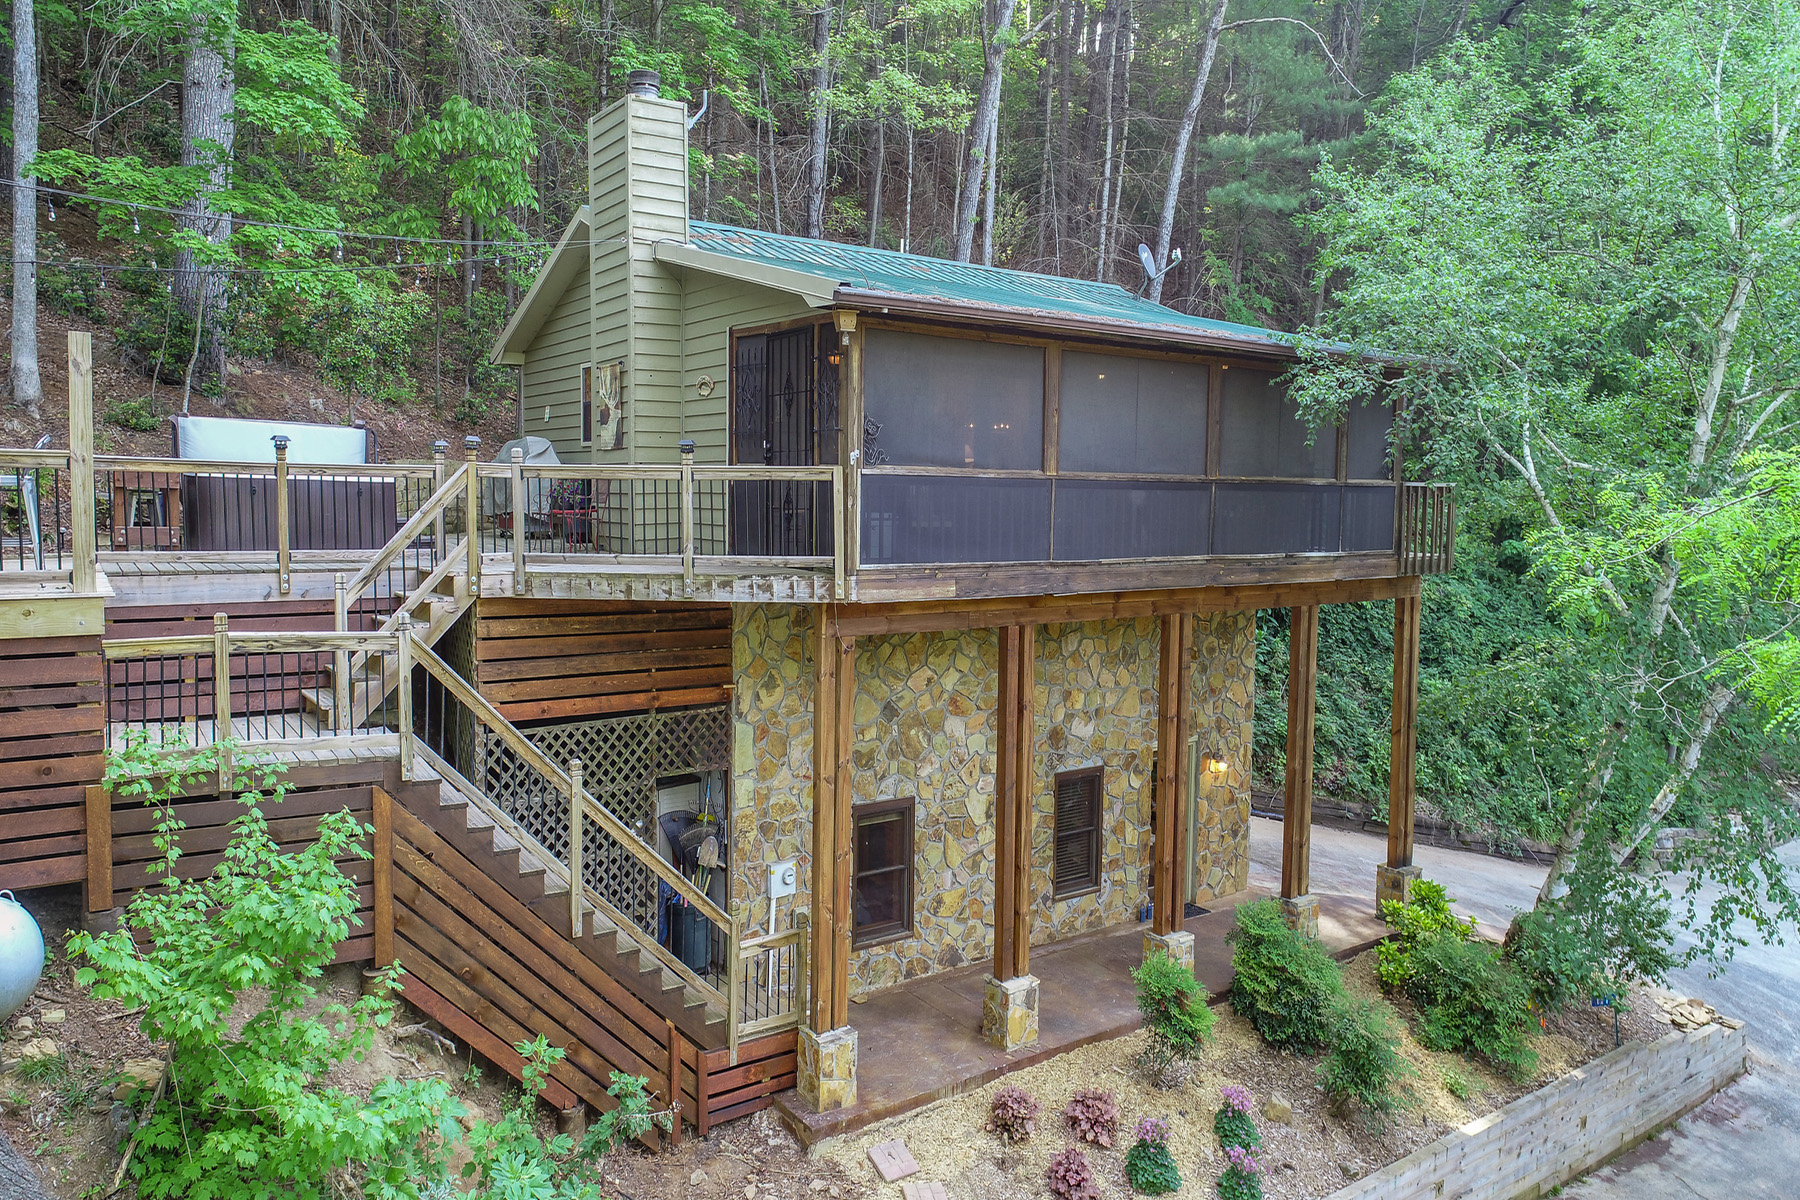 Single Family Home for Sale at Blue Ridge Lake Front 117 Tilley Ridge Road Blue Ridge, Georgia 30513 United States